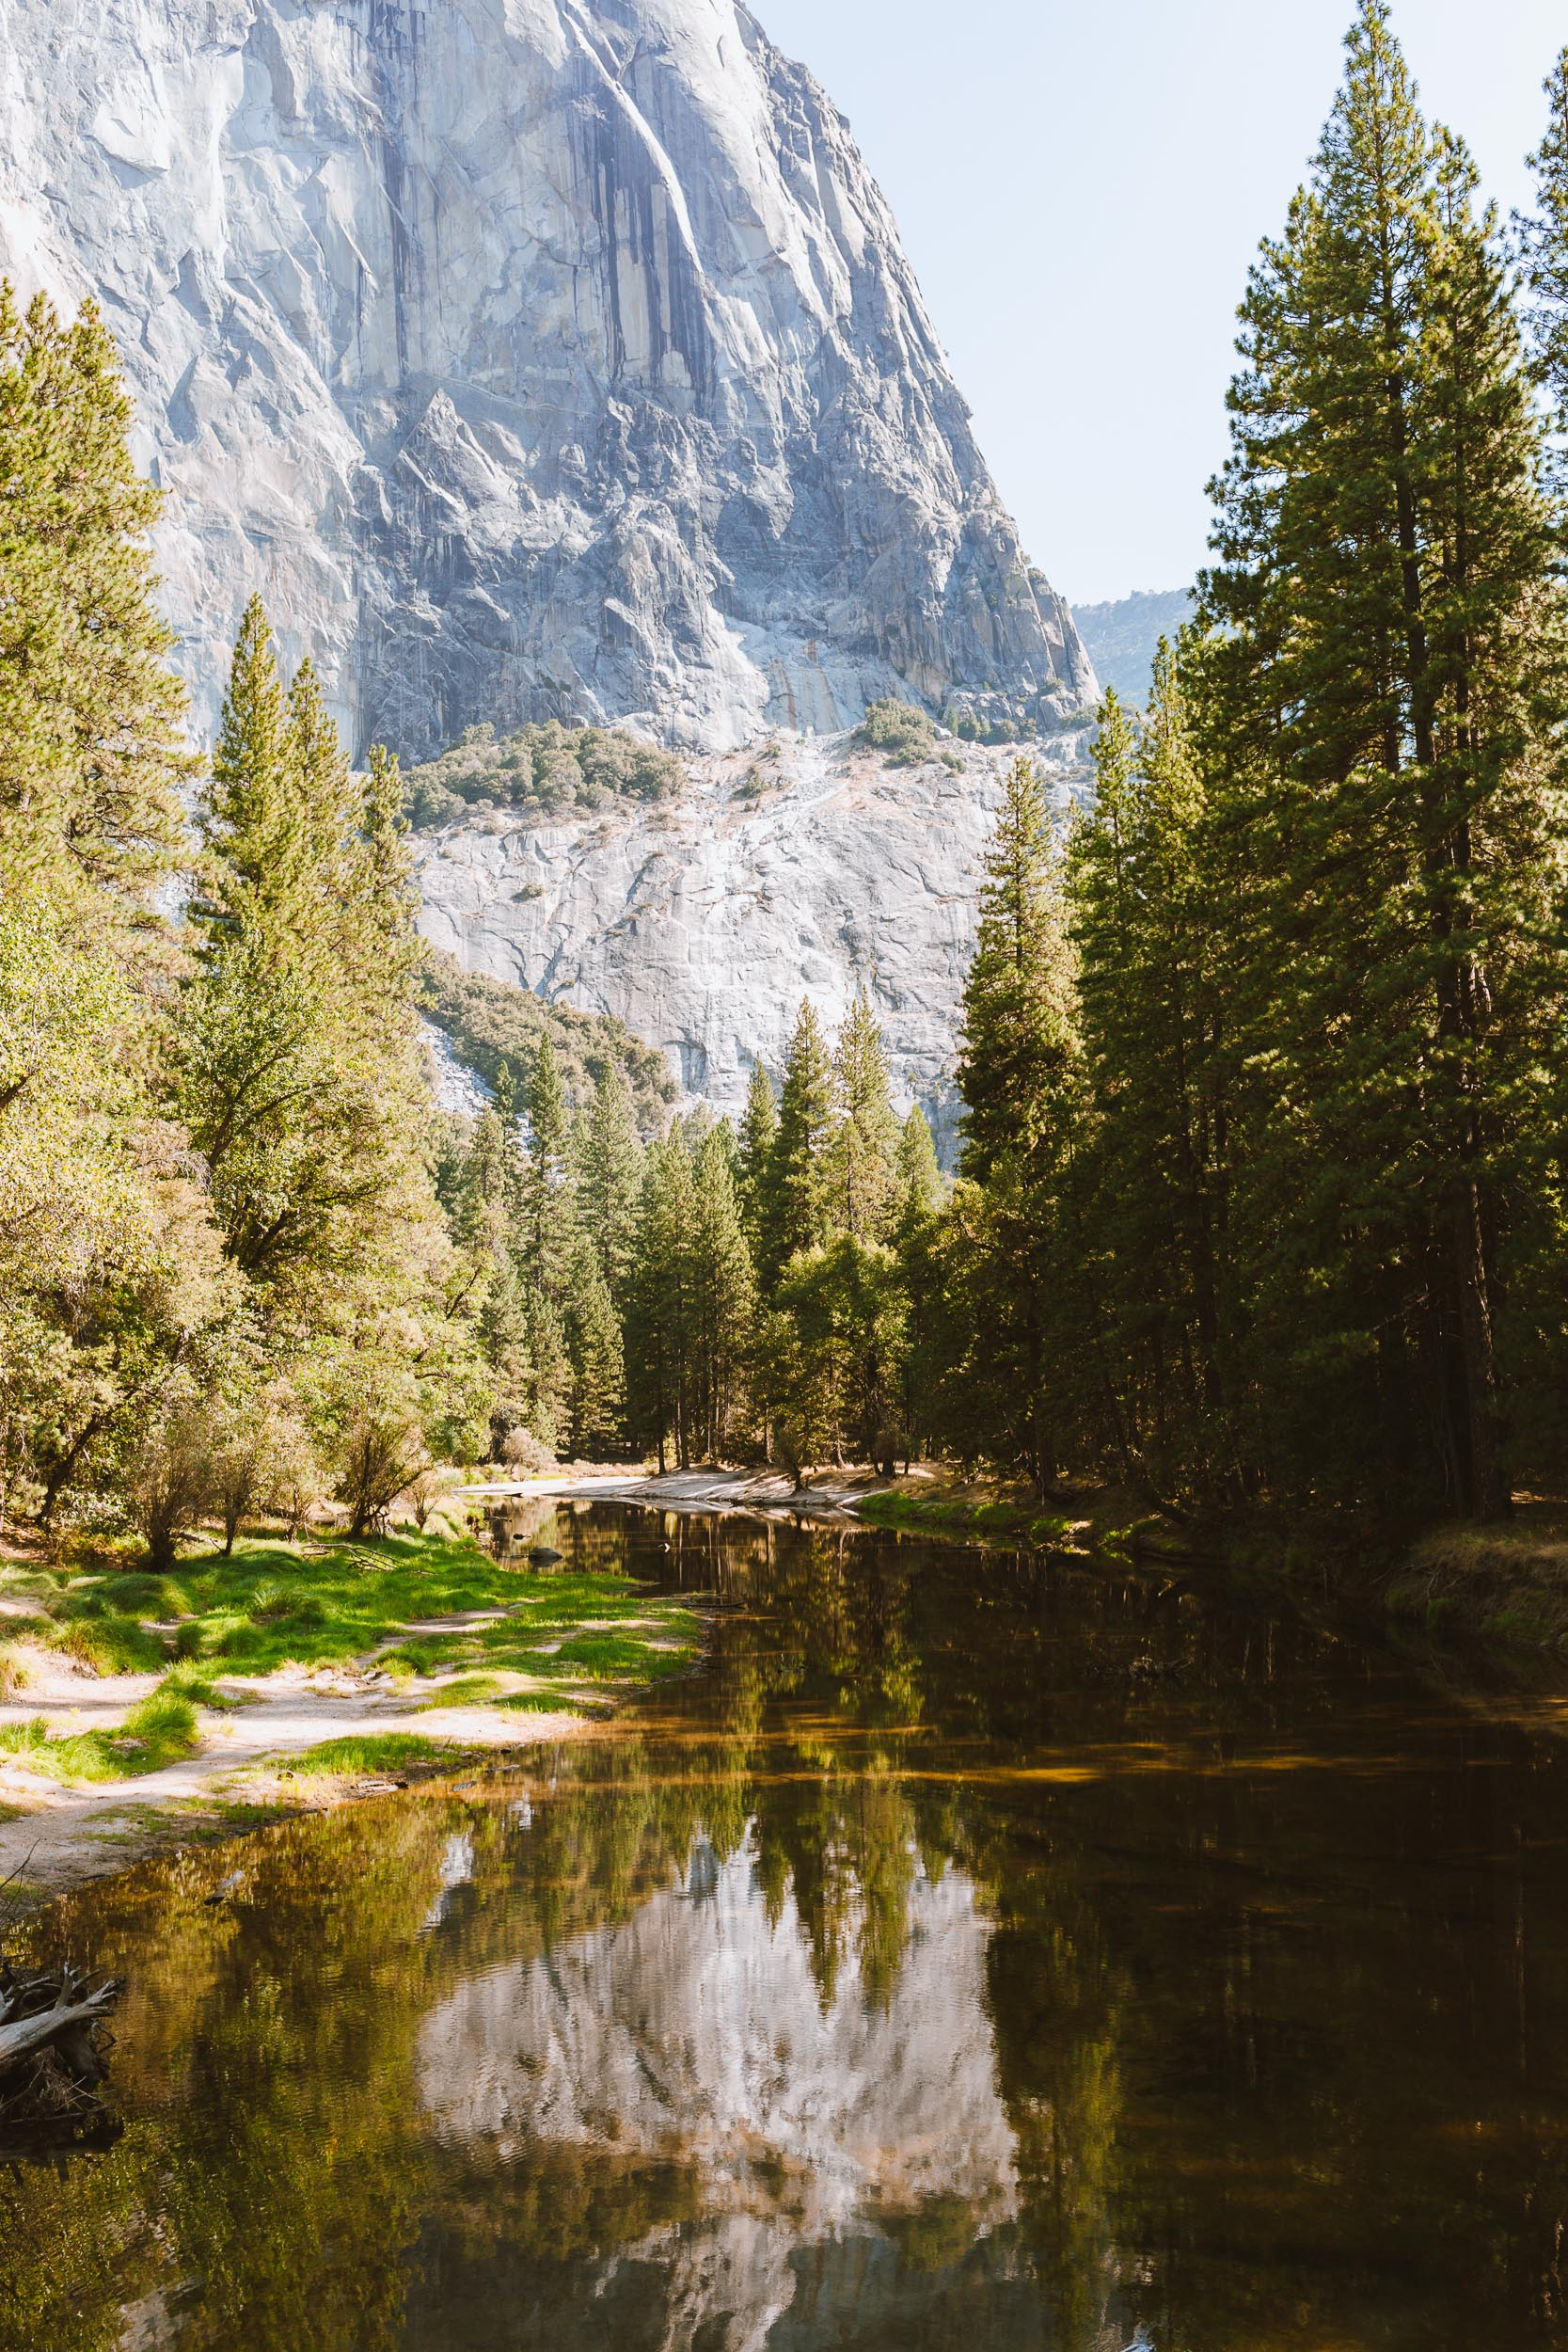 20160820_20160821_YOSEMITE_NATIONAL_PARK-5.jpg